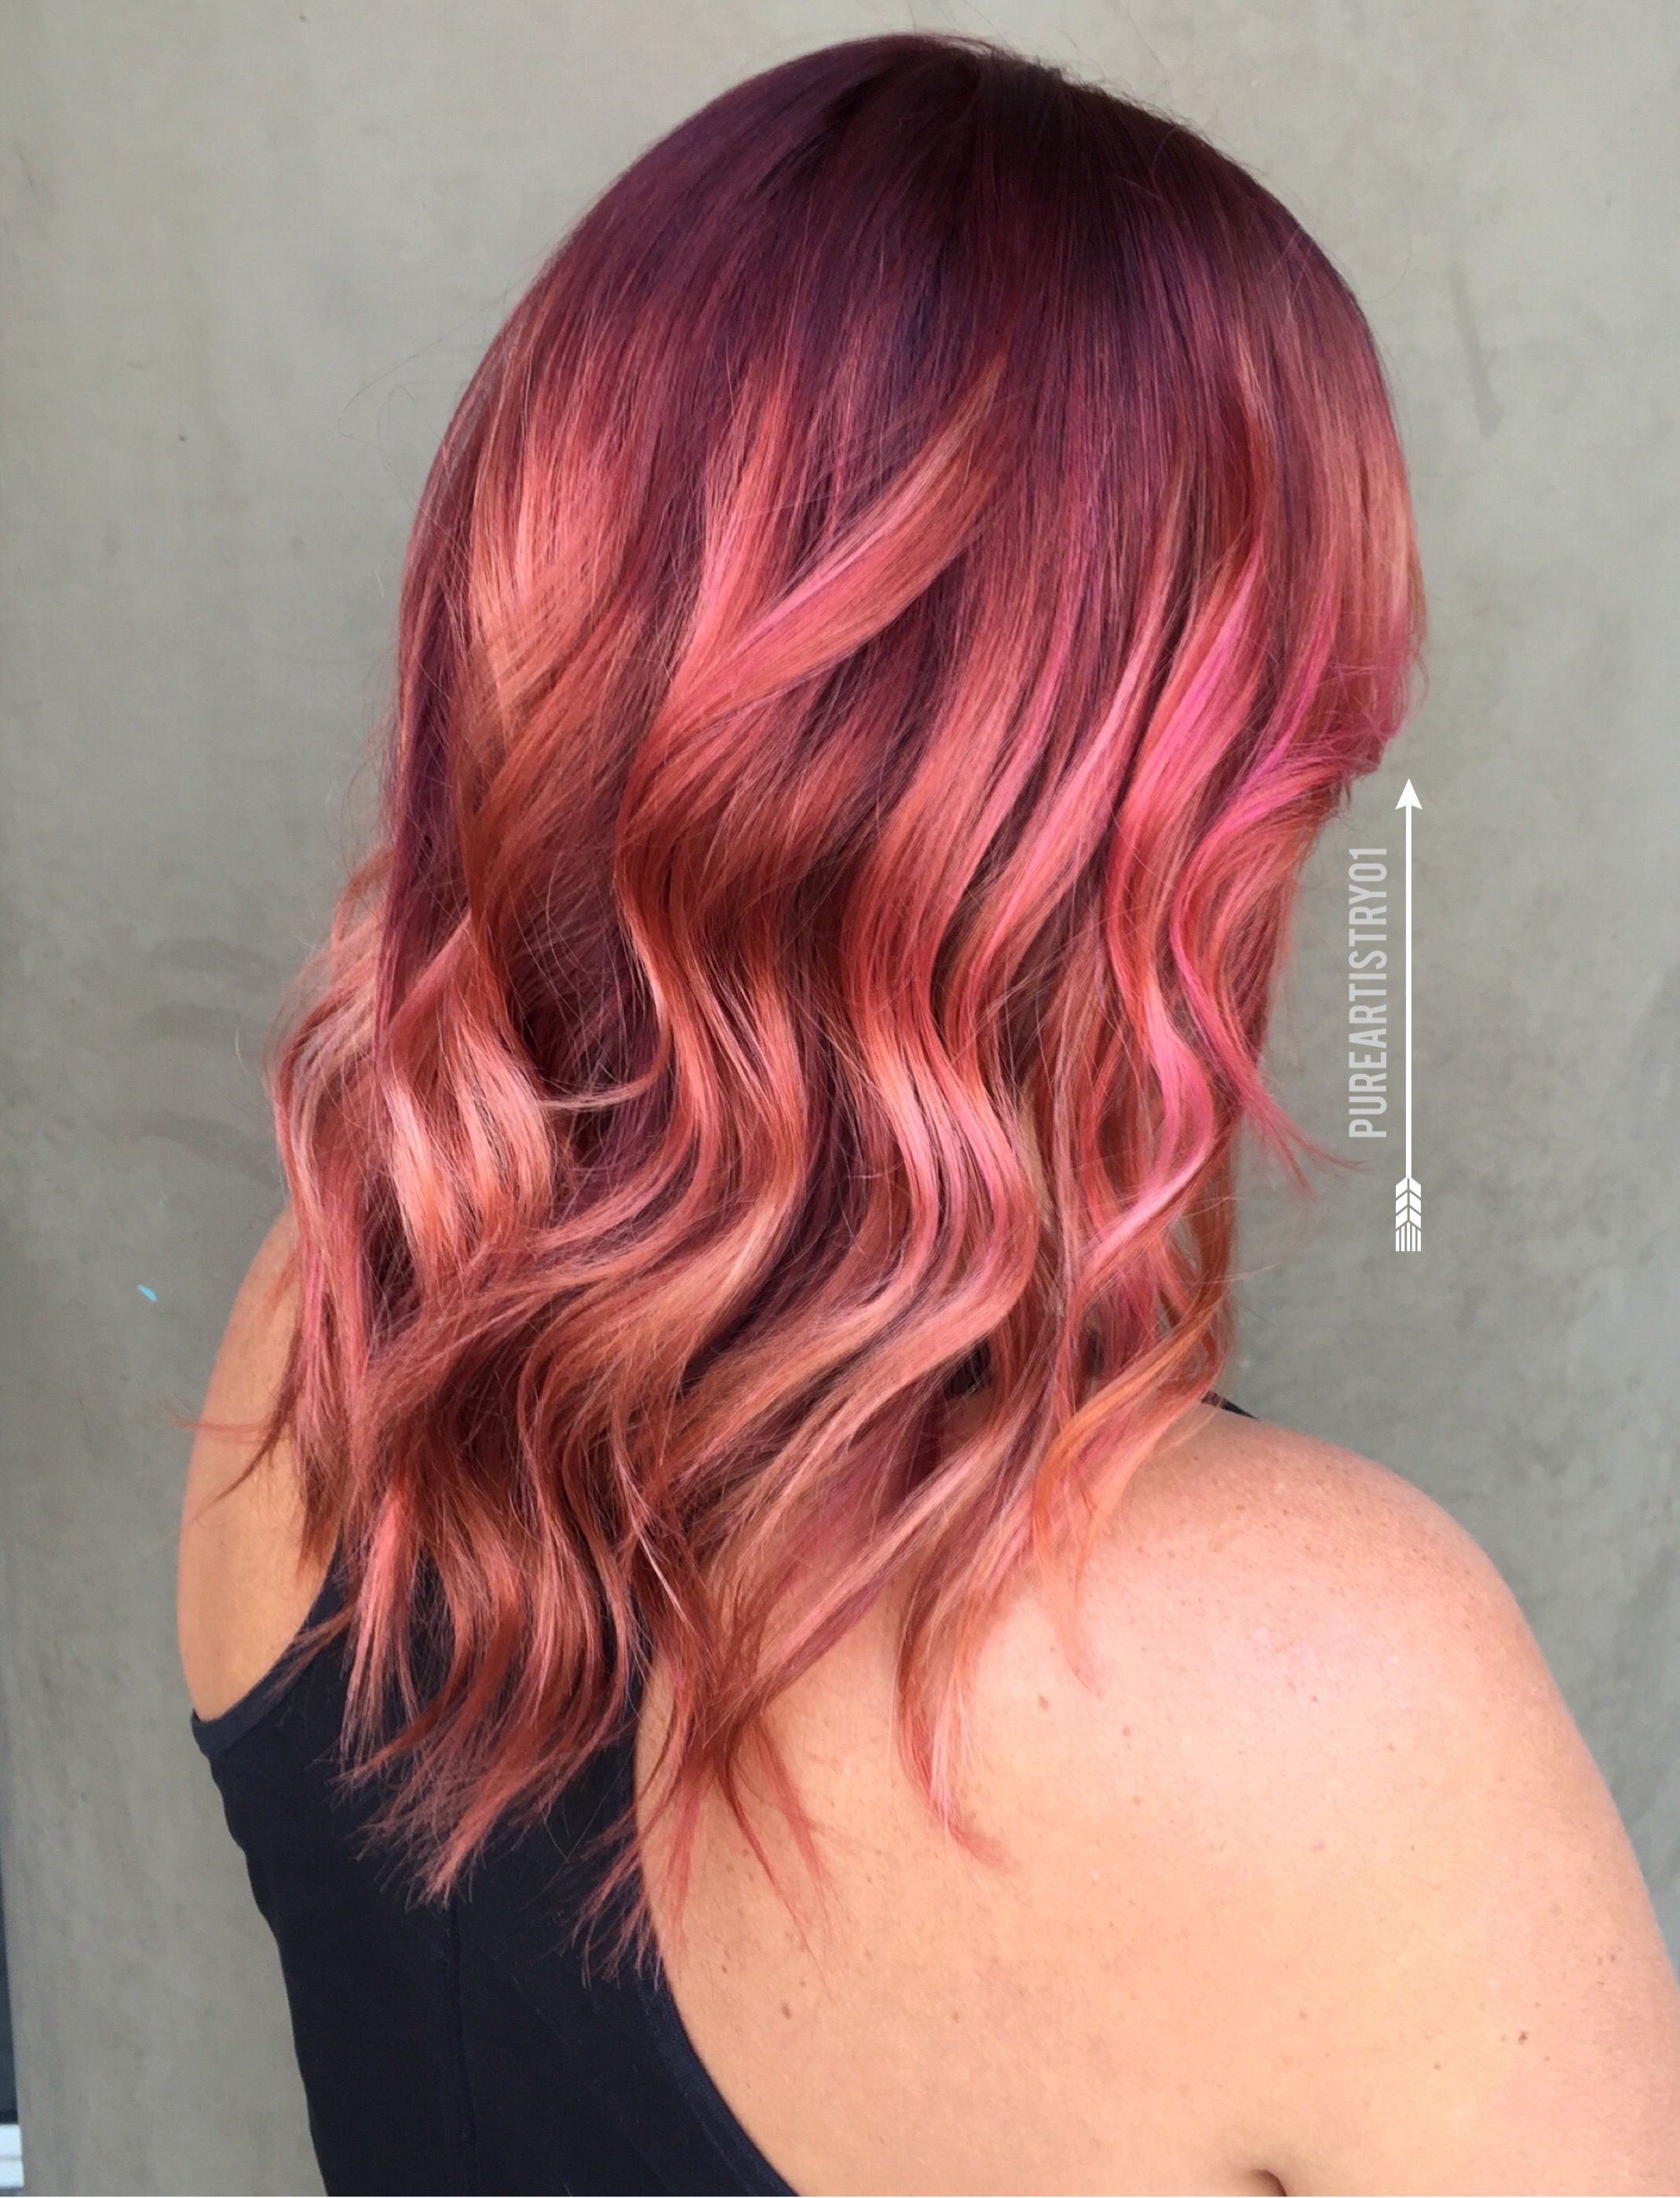 Rose gold hair 2016 fall hair color hairbywendywalker balayage